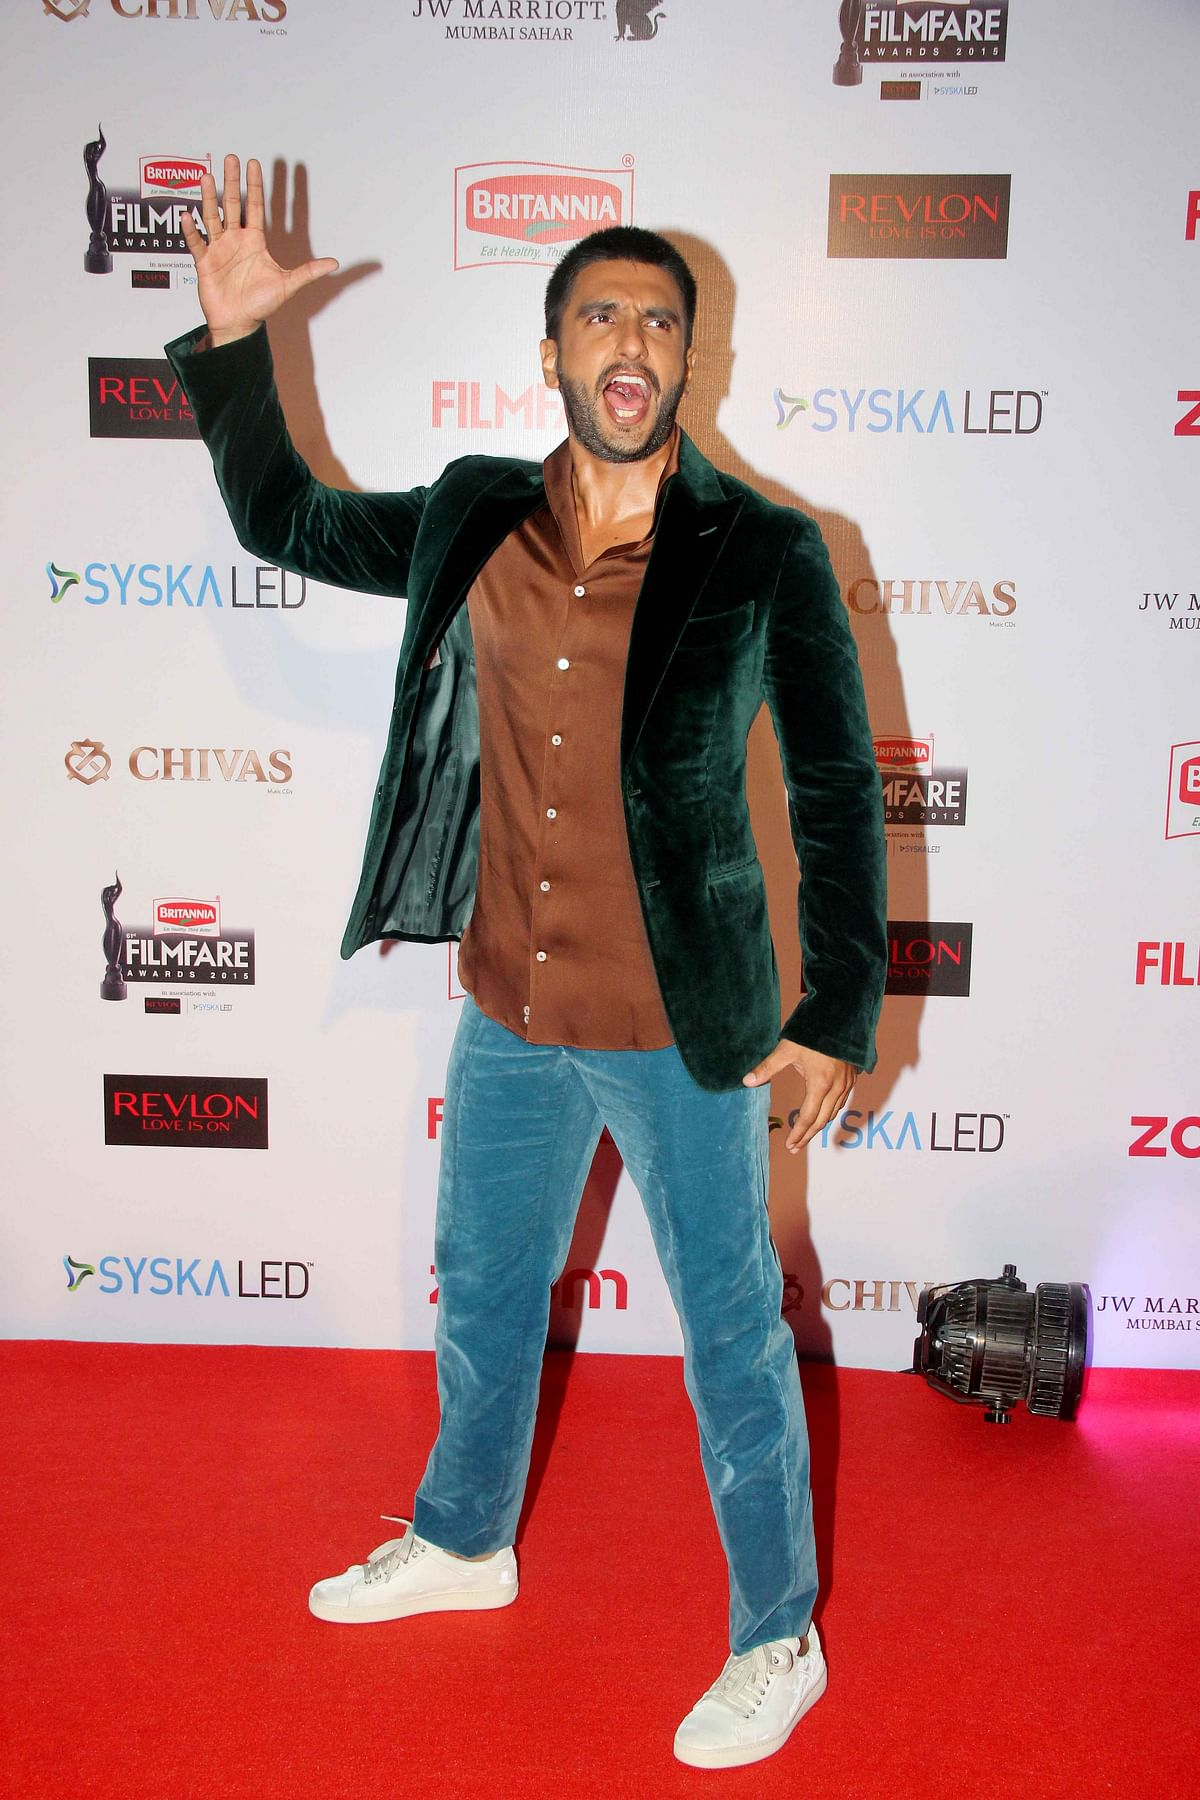 Ranveer Singh: Just when we thought his fashion sense was improving (Photo: Yogen Shah)